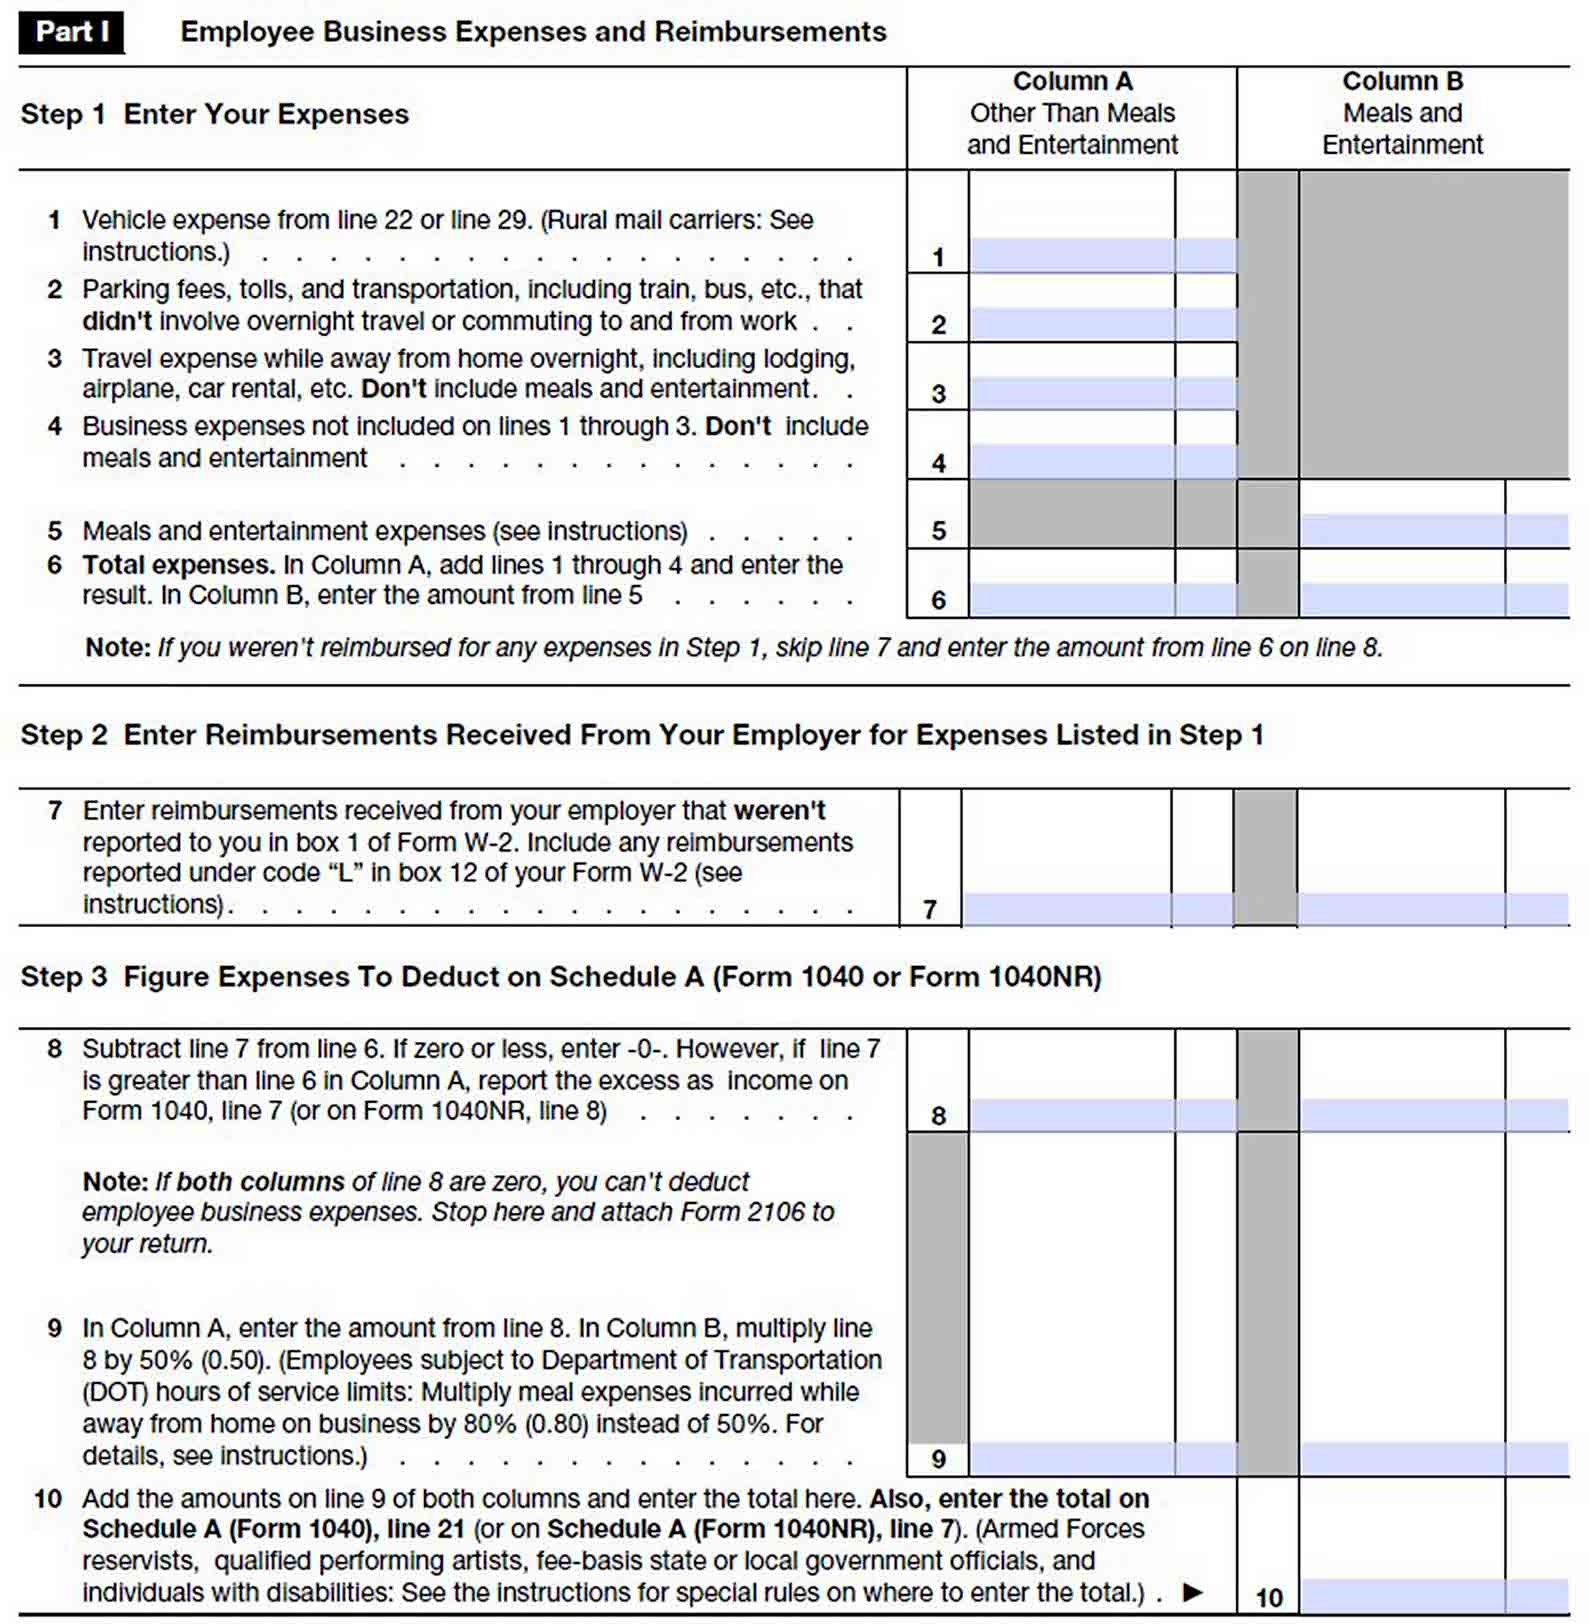 Annual Business Expense Report sample